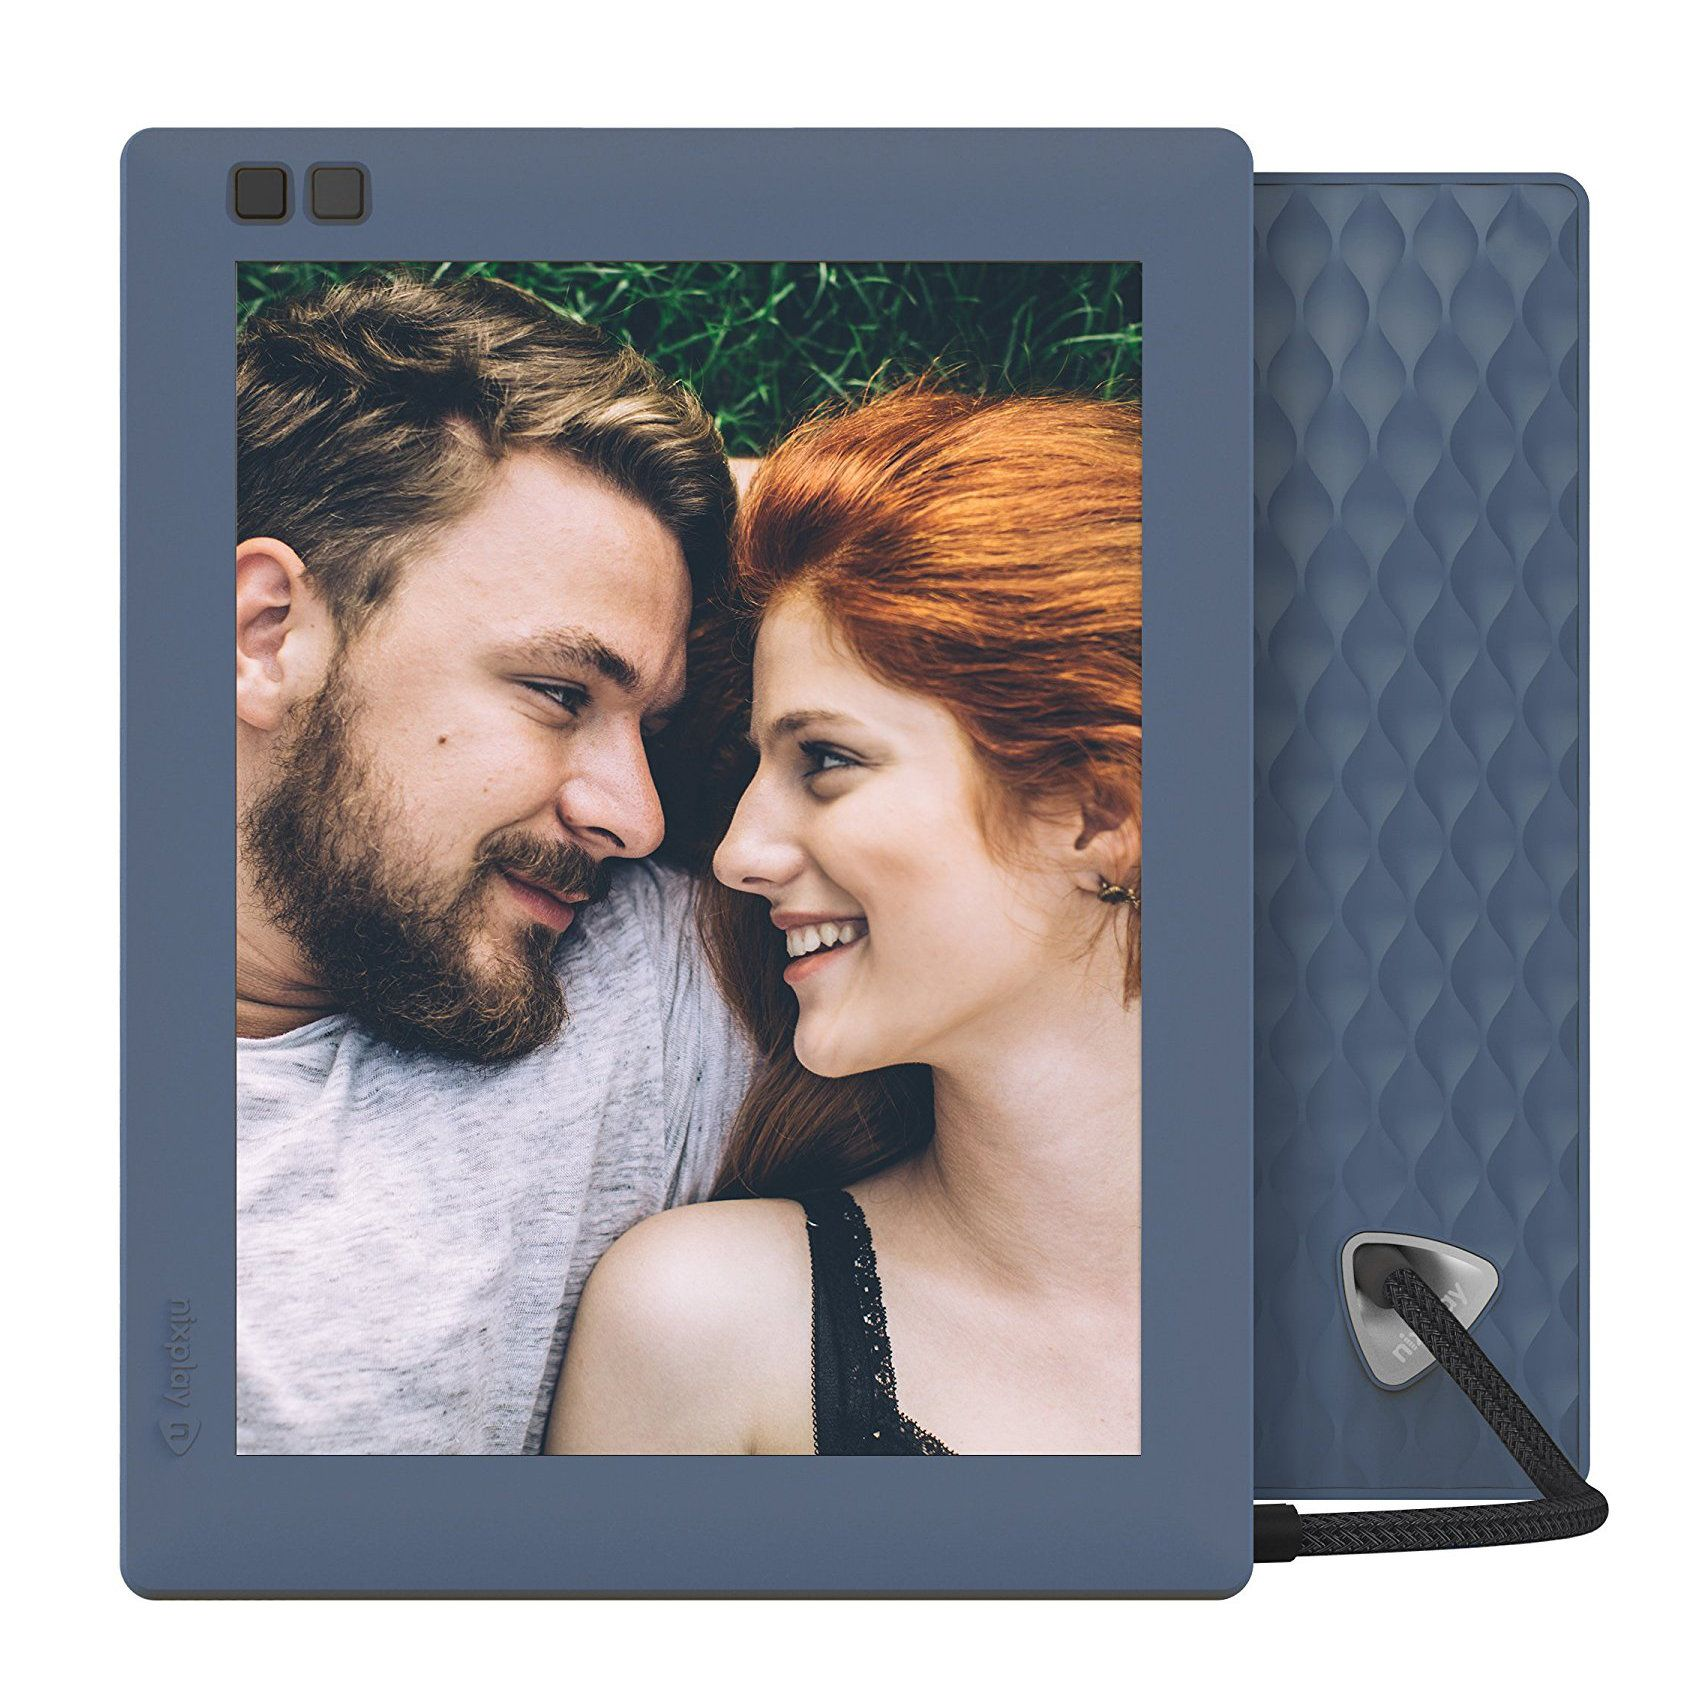 Nixplay Seed 8-inch Wi-Fi Digital Photo Frame